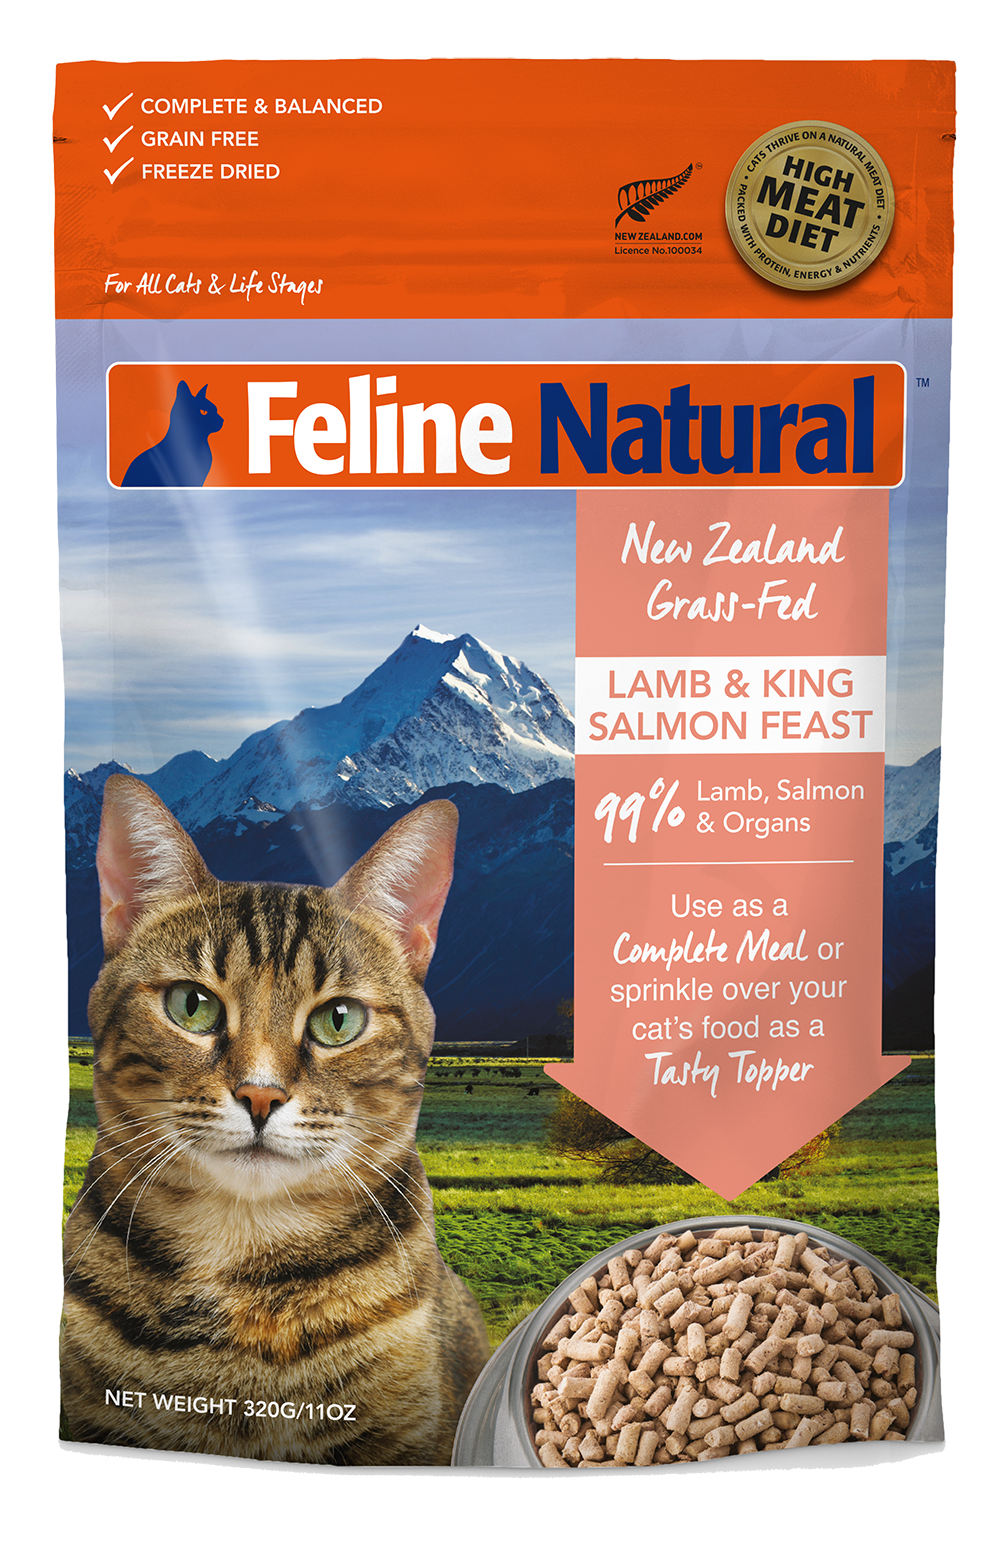 Feline Natural Freeze Dried Lamb & King Salmon Feast 320g